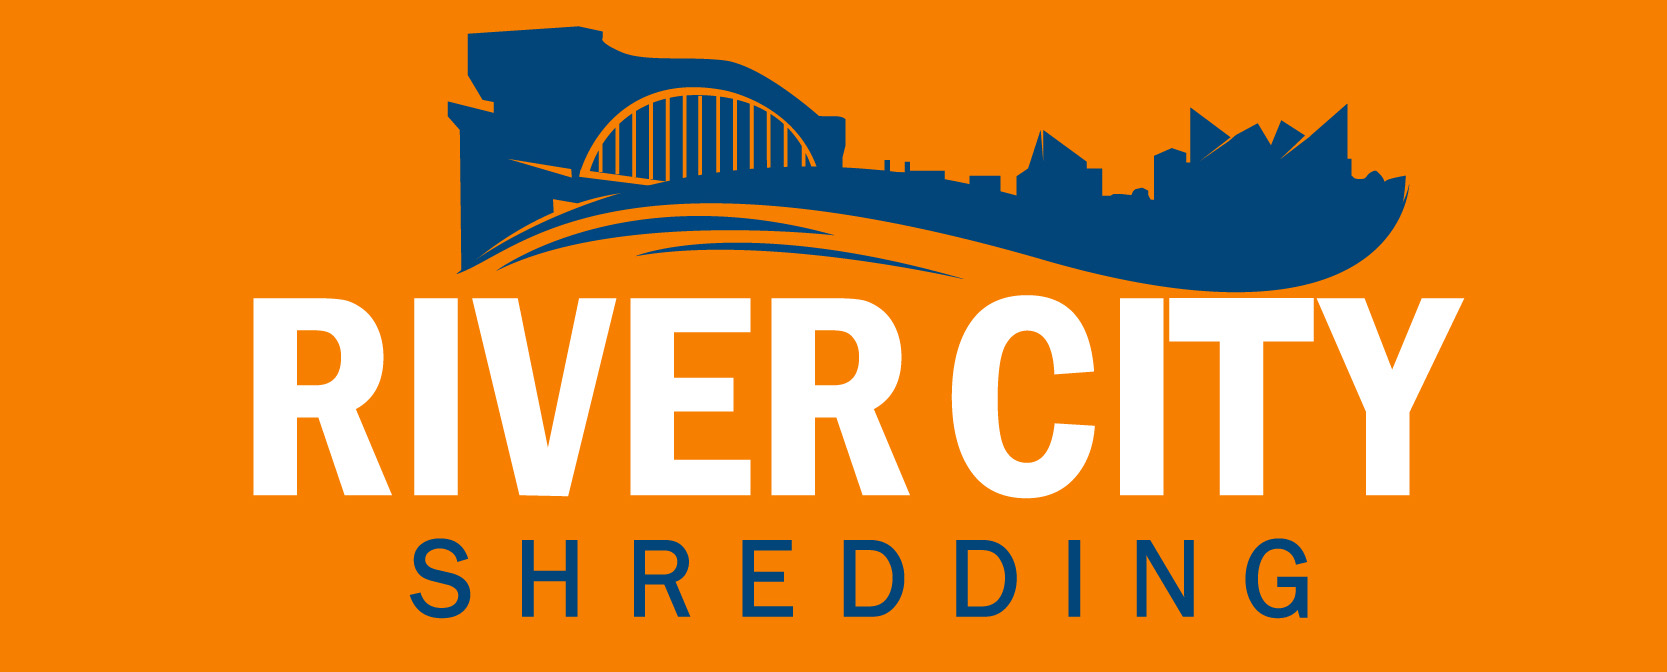 River City Shredding Logo